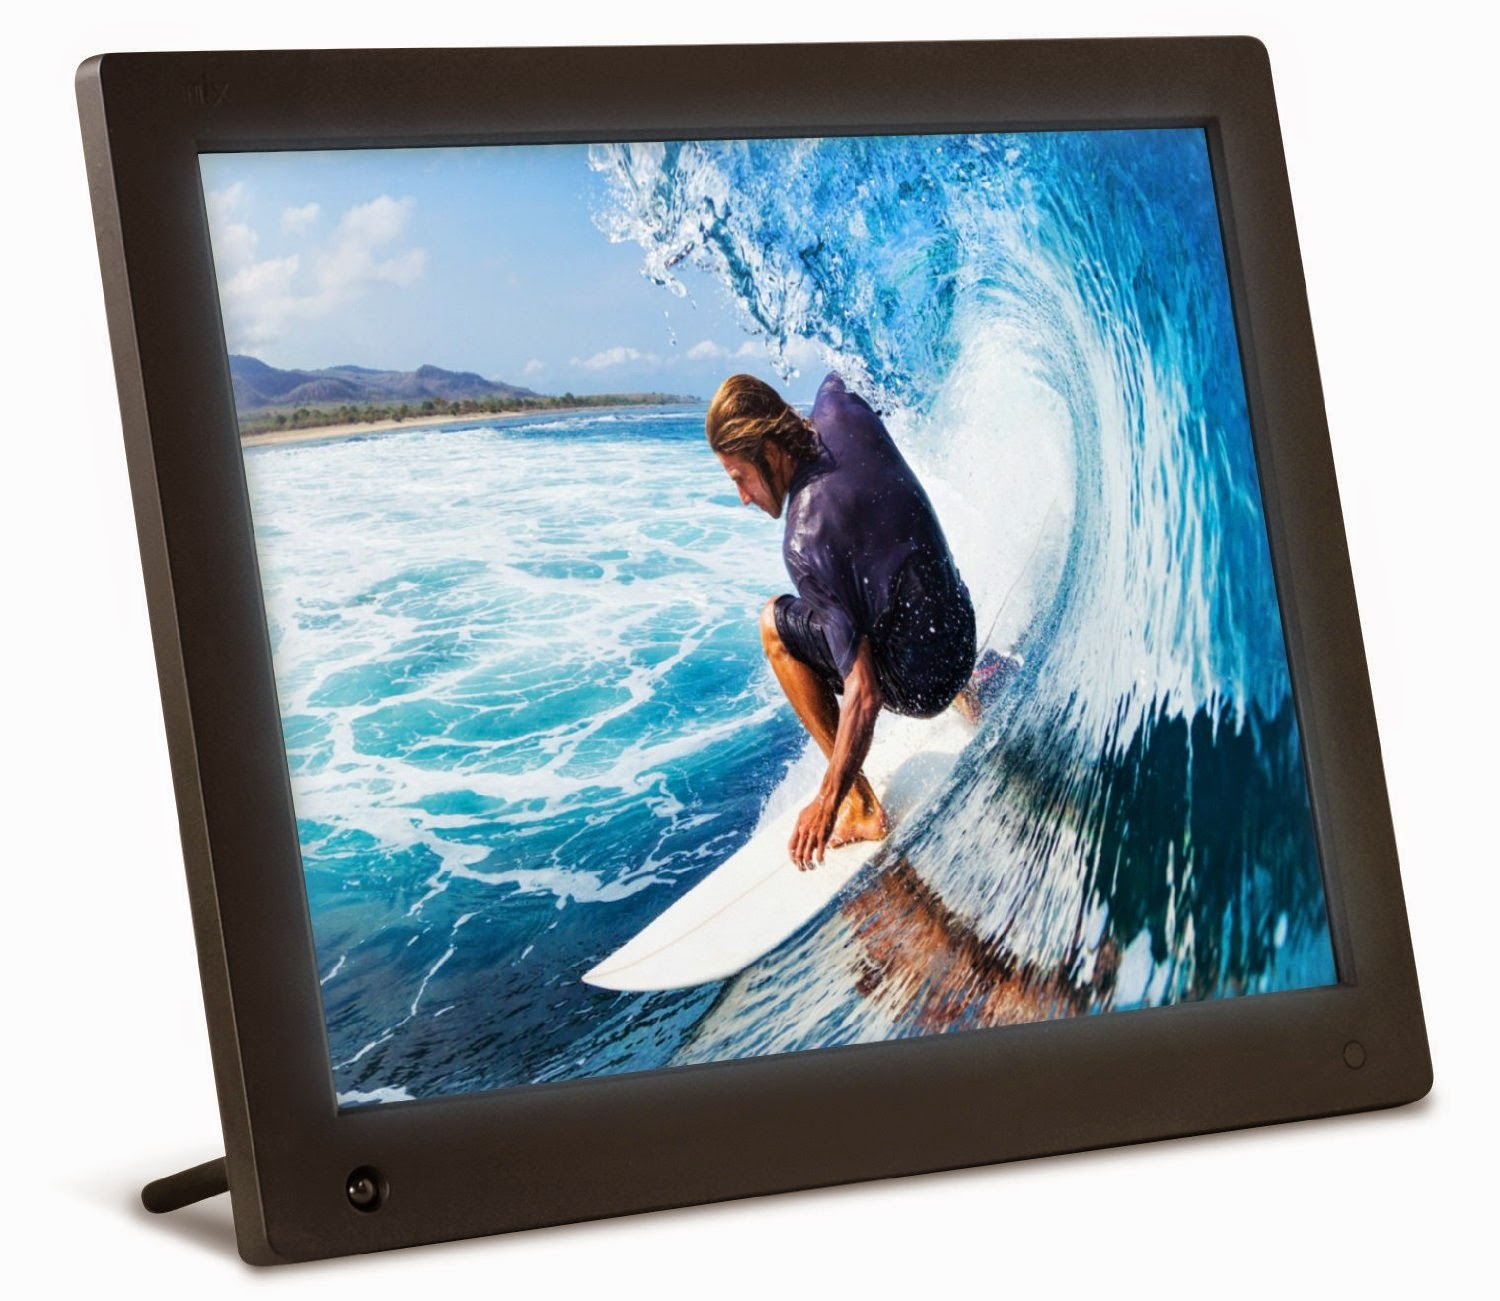 nix 12 inch hi res digital photo frame with motion sensor 4gb memory x12c by nix